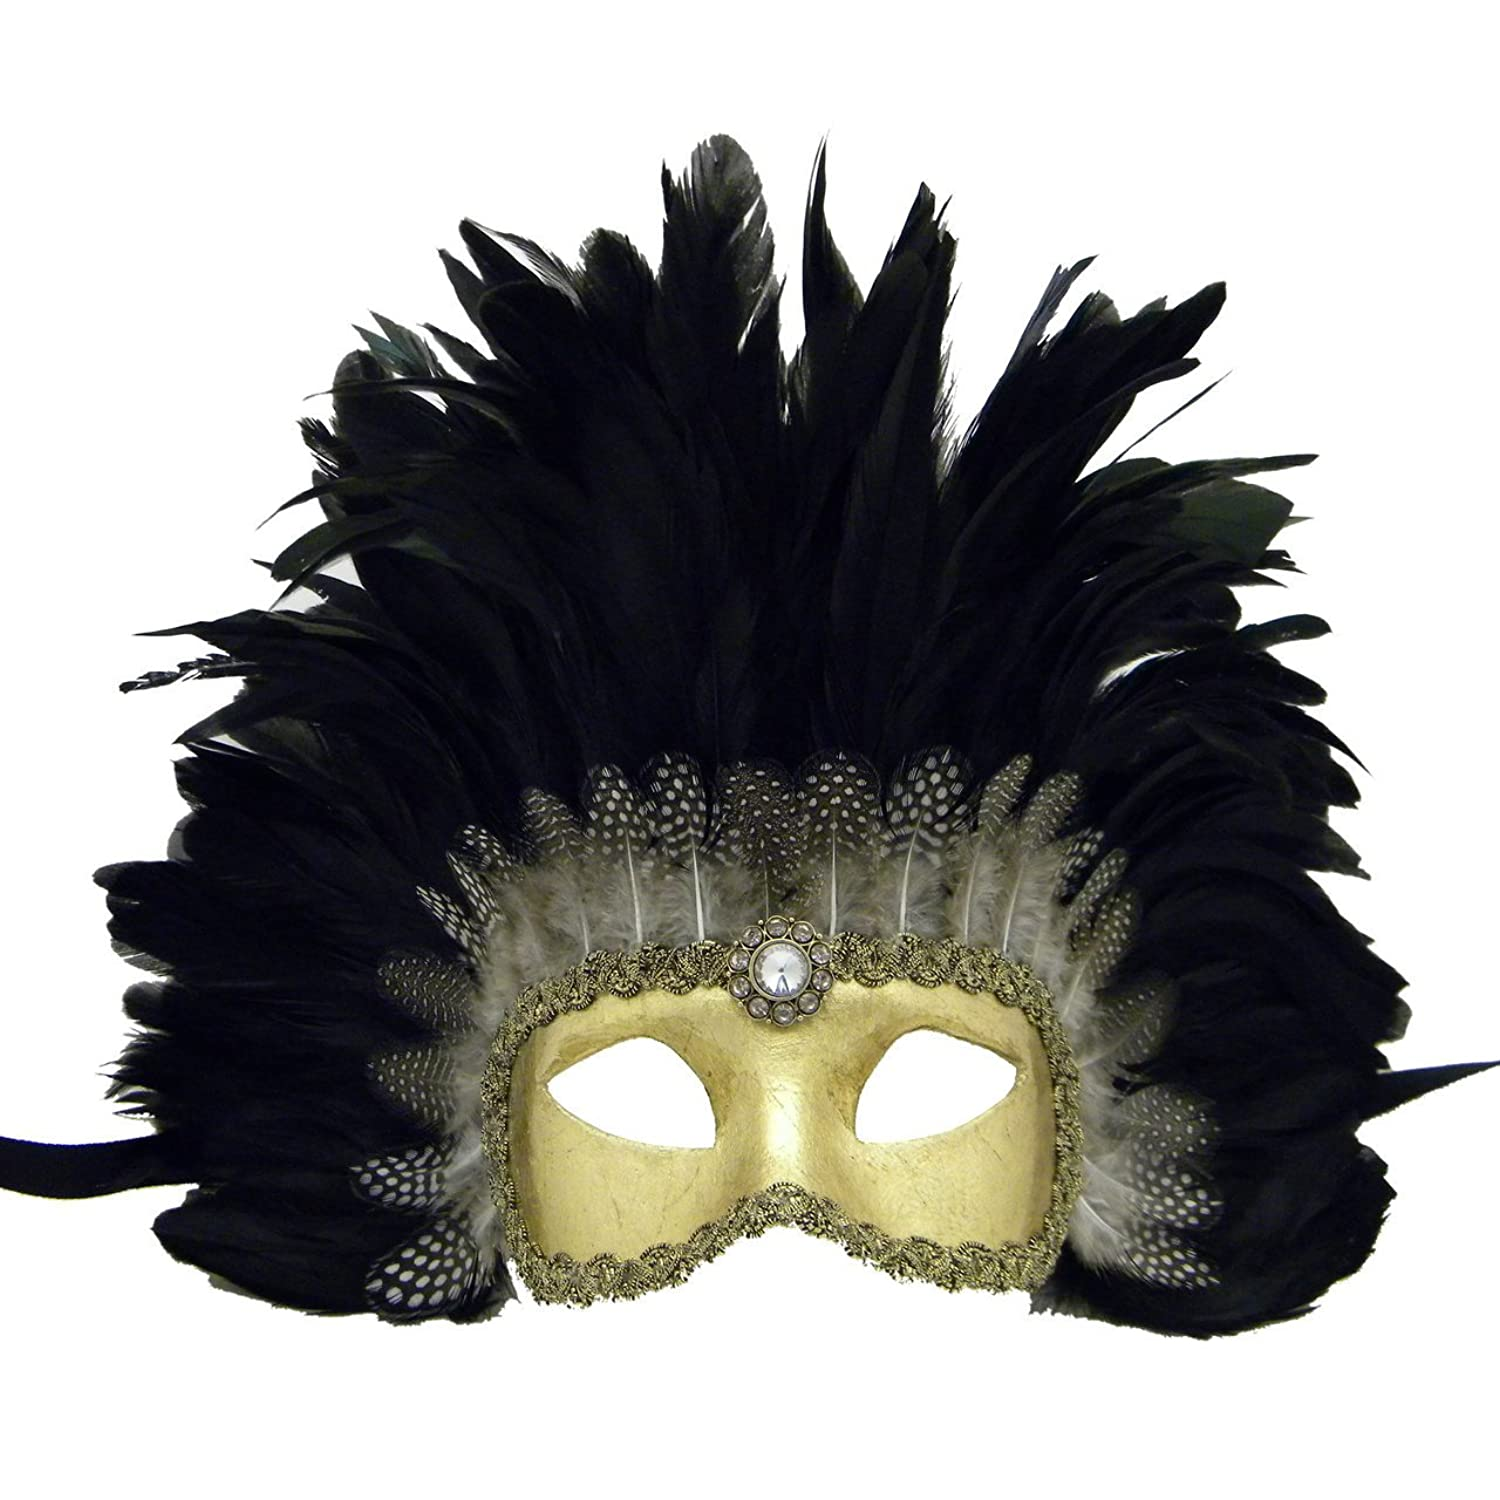 Red /& Gold With Peacock Feathers Venetian Masquerade Party Mask NEW